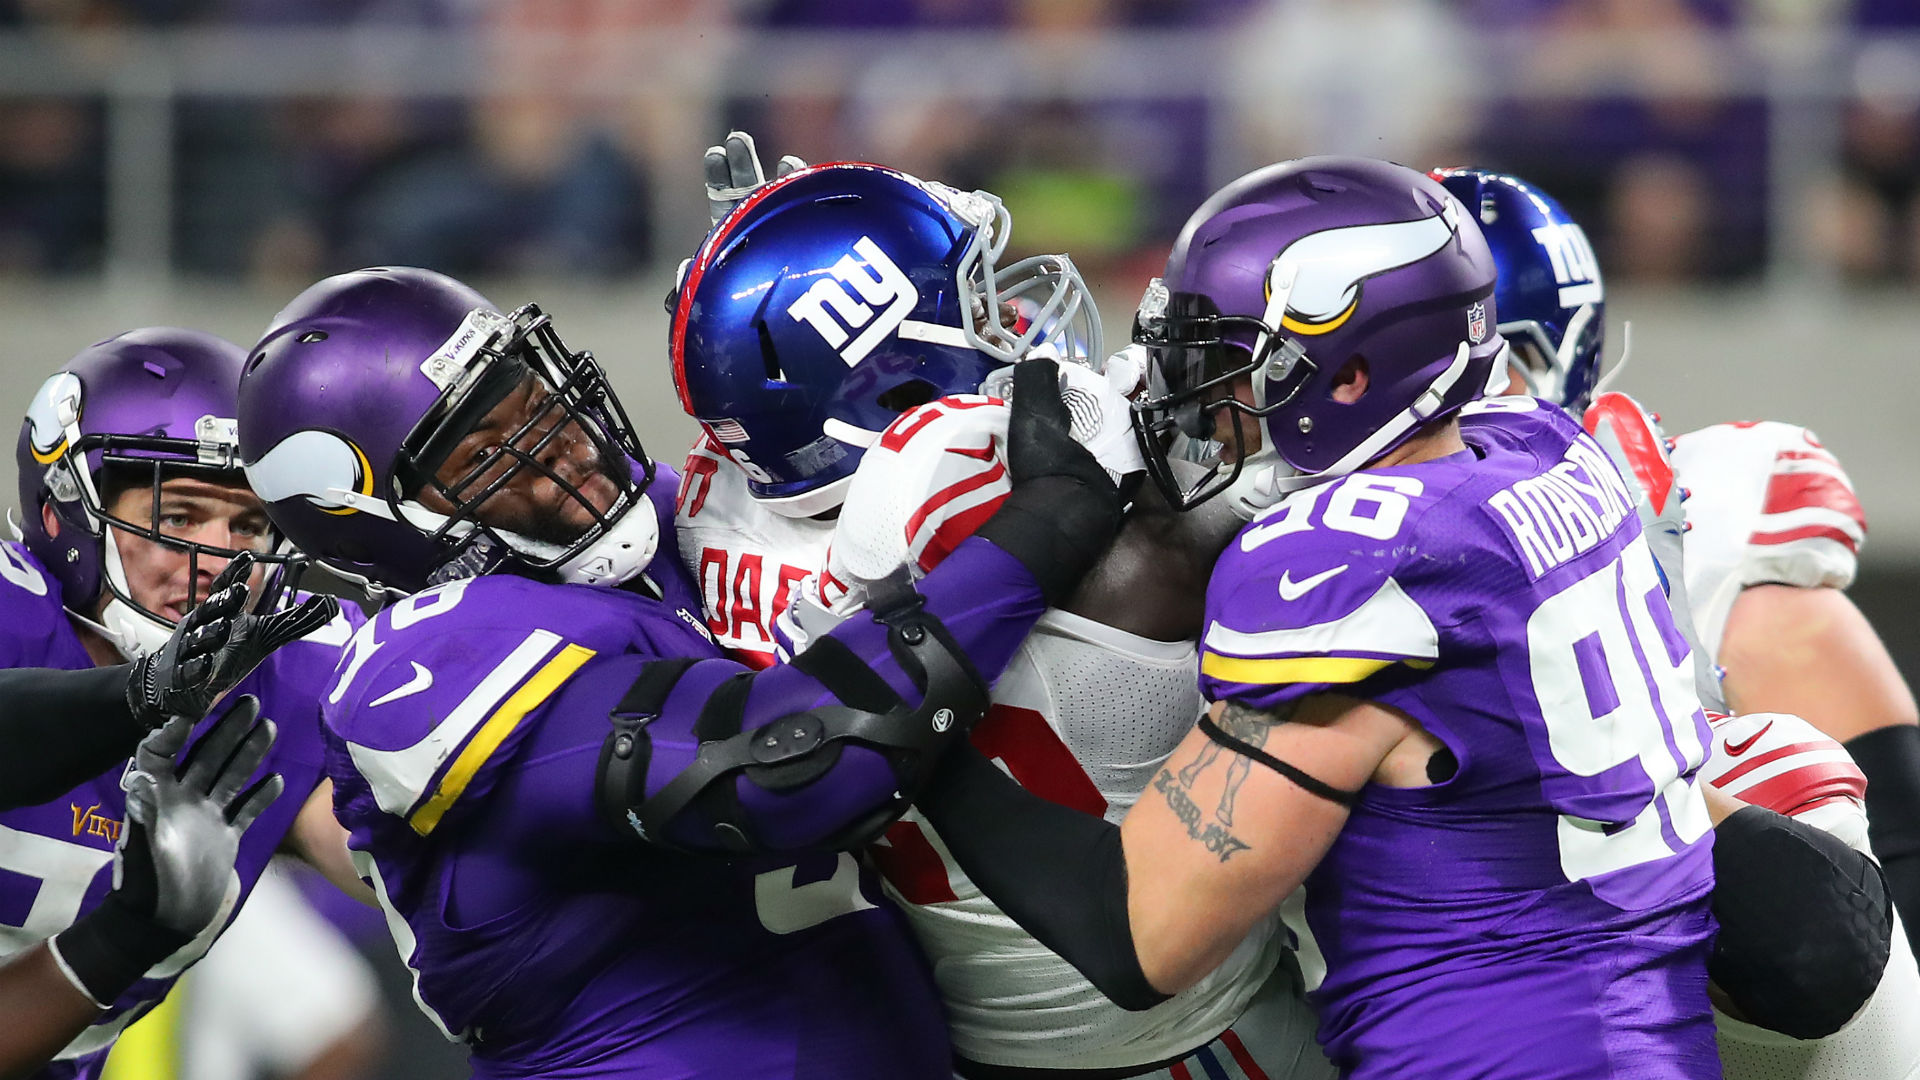 Minnesota Vikings sign Linval Joseph to $50M extension